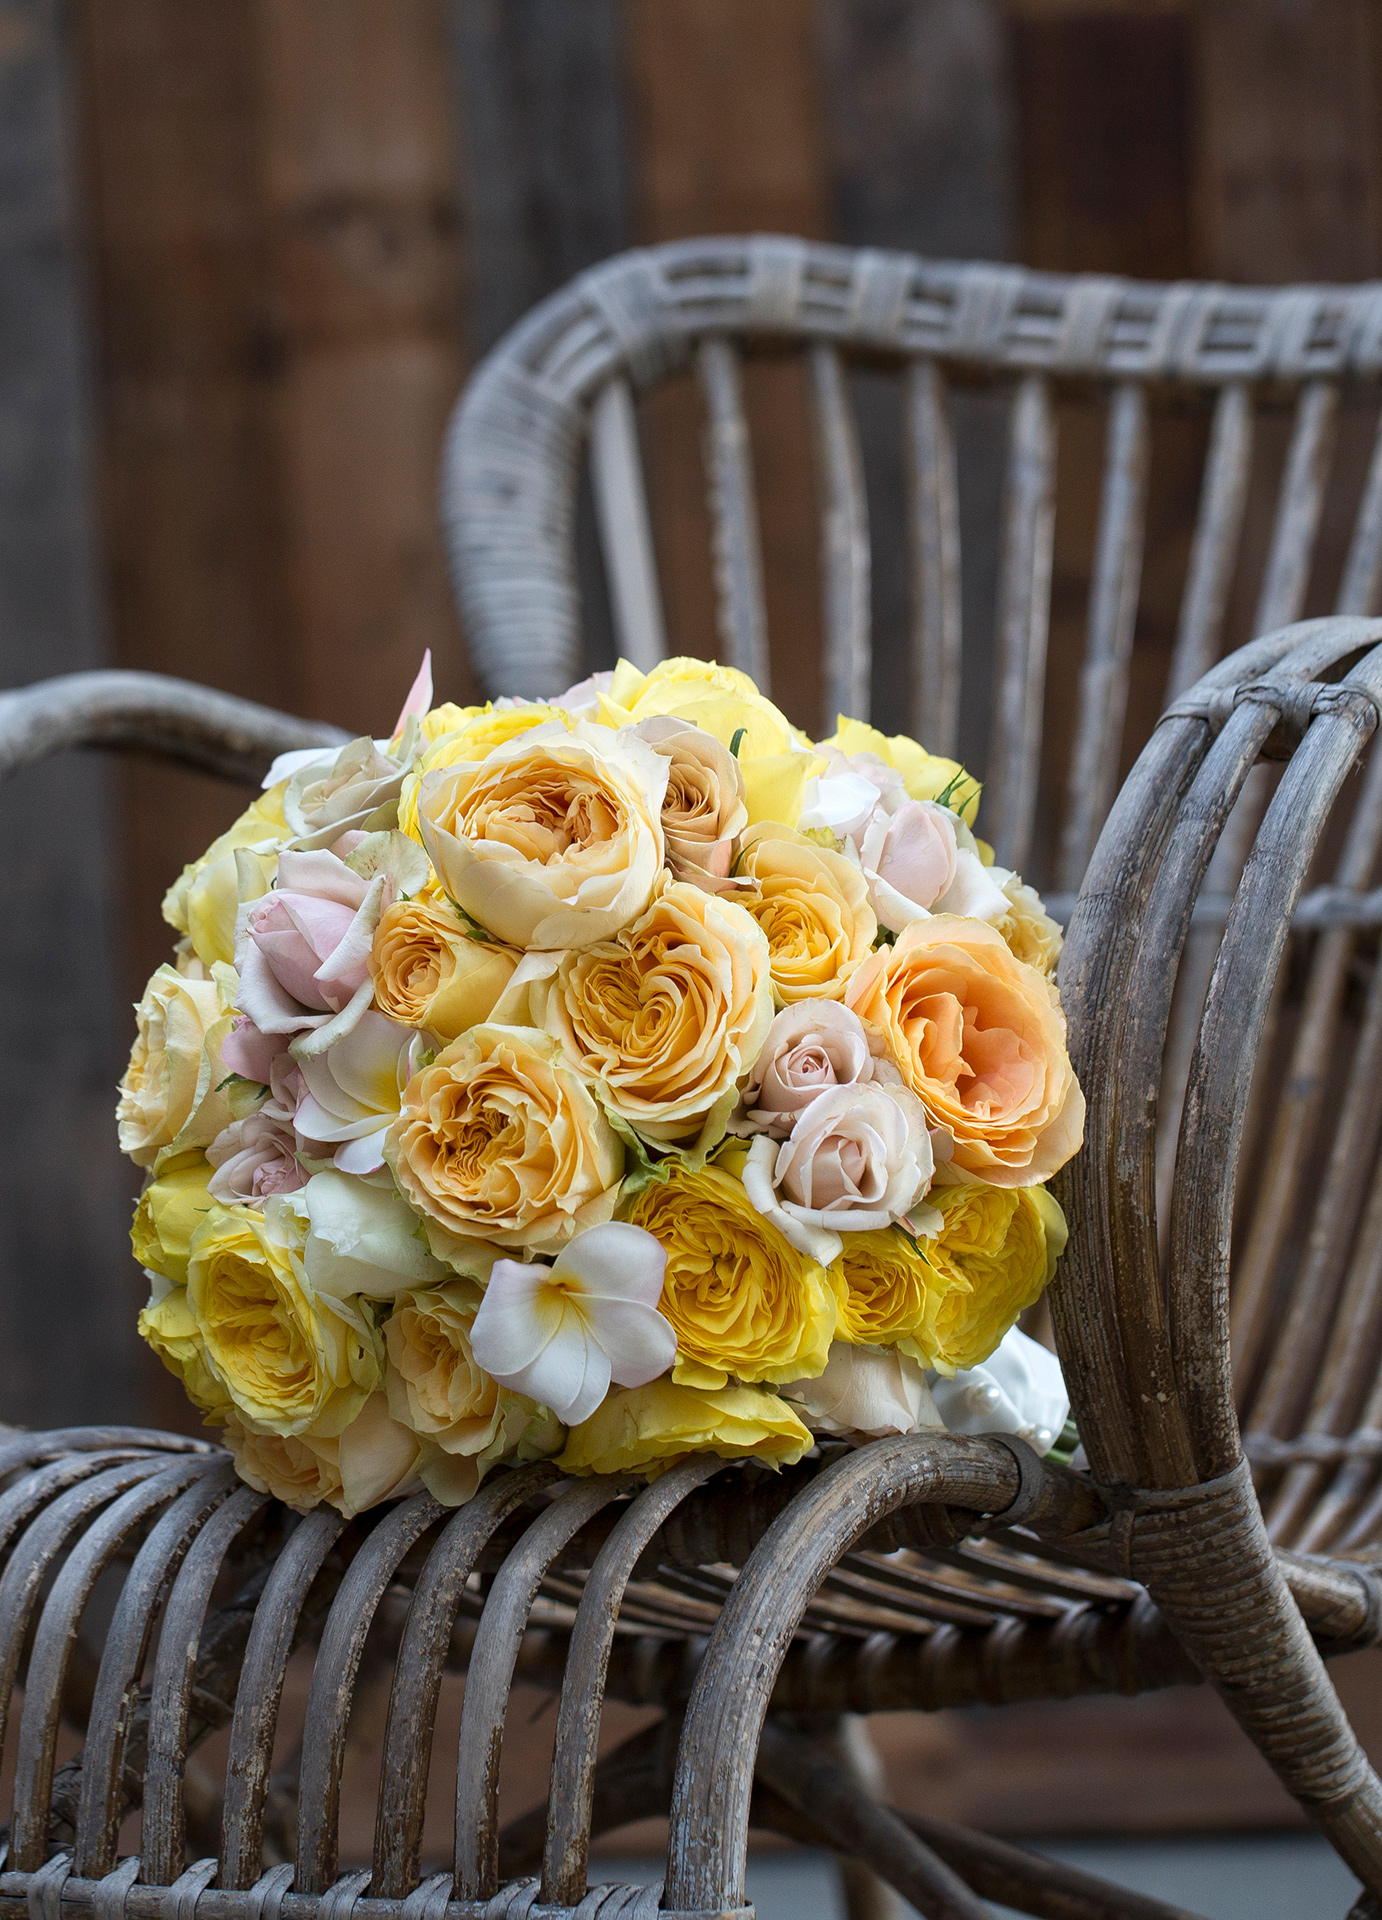 For a softer look and feel of your wedding bouquet, Caramel Antike is a definite must have!